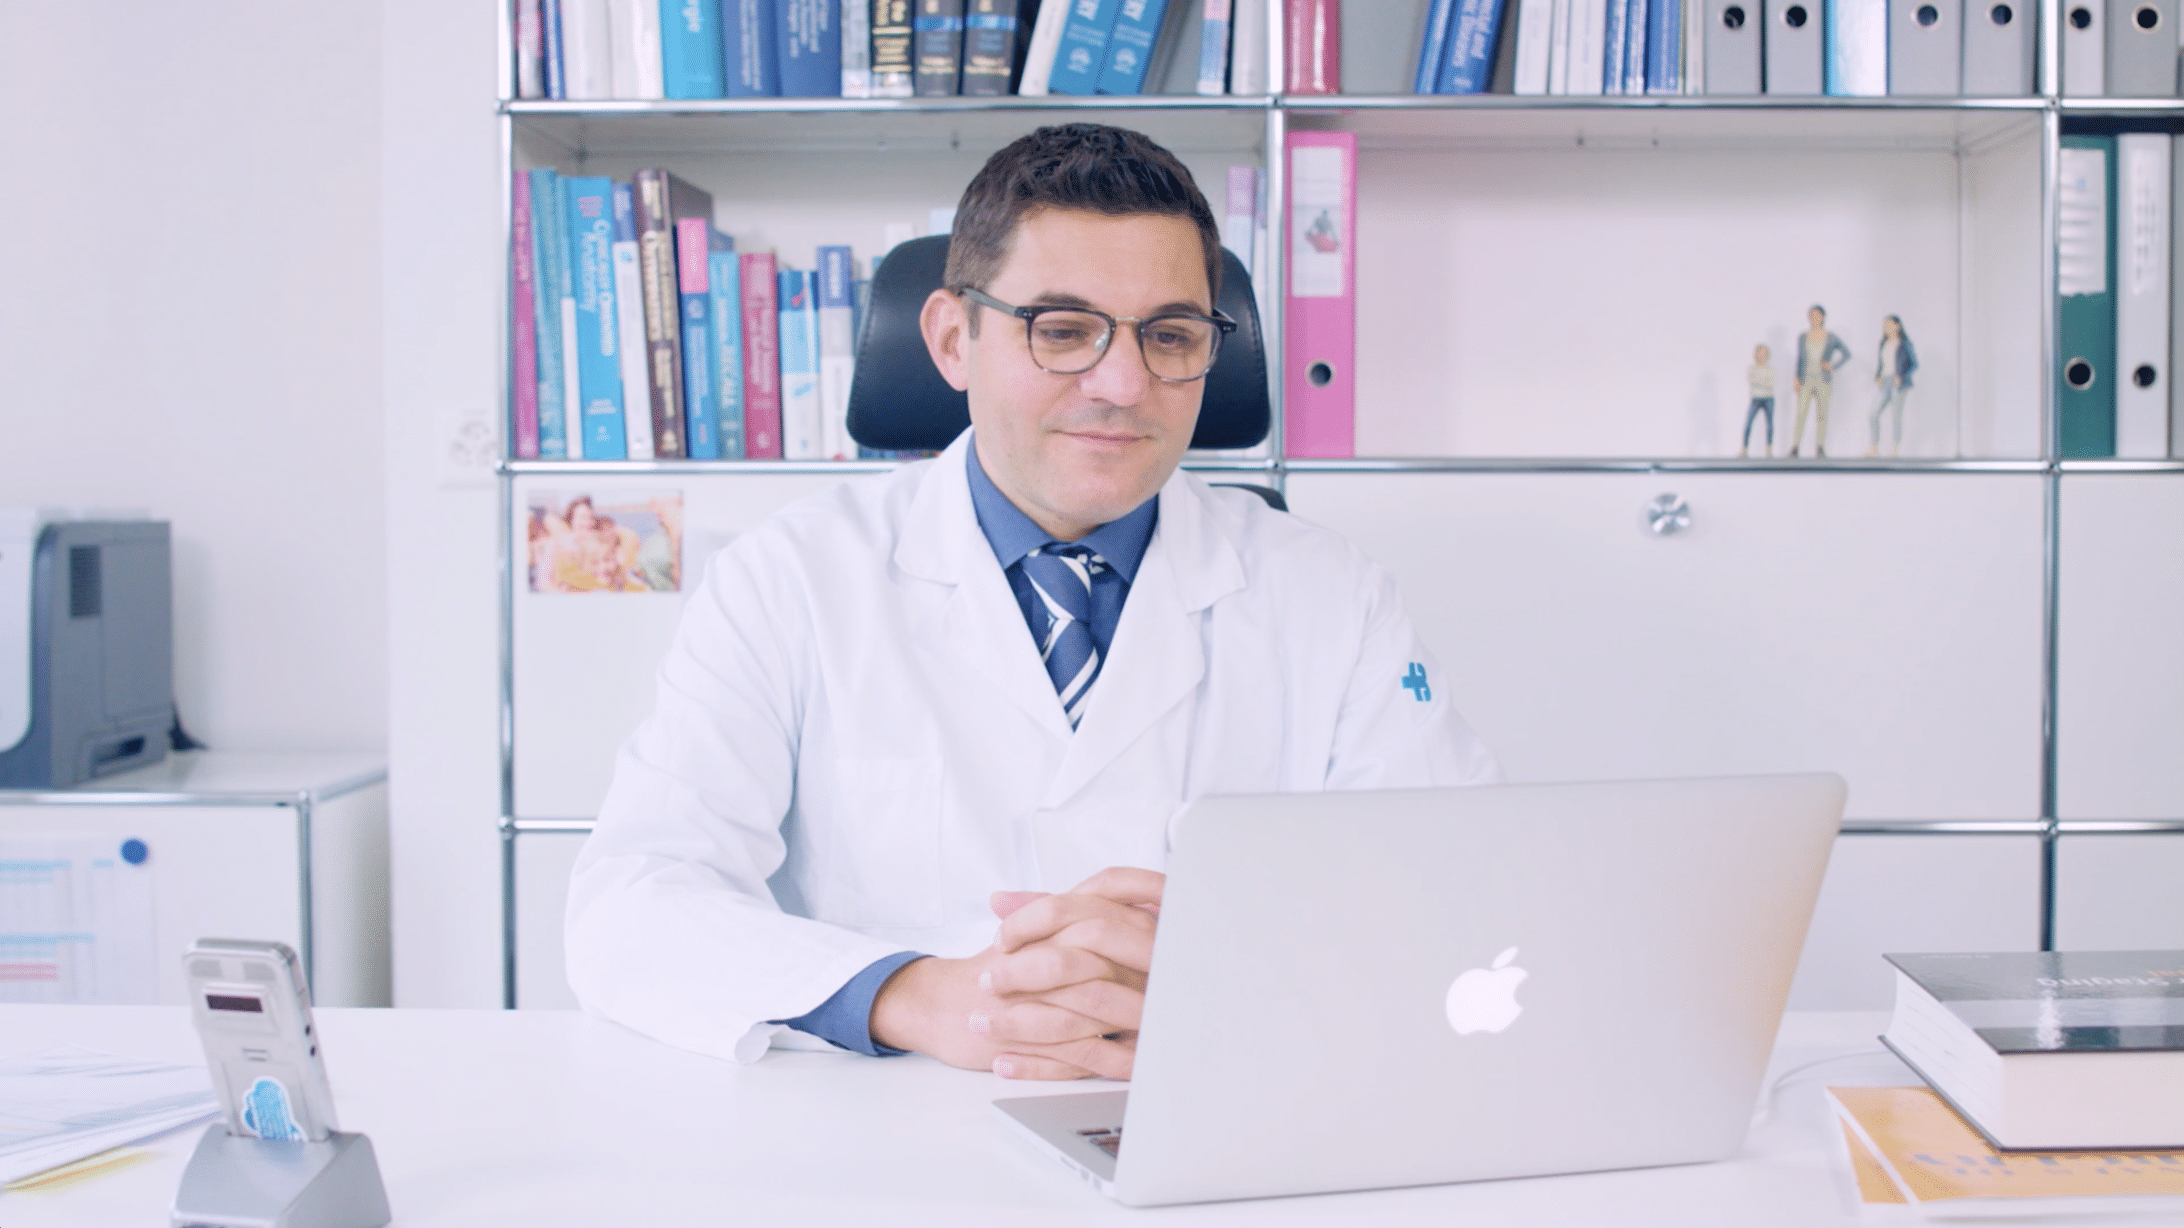 Prof. Dr. med. A. Nocito am Laptop